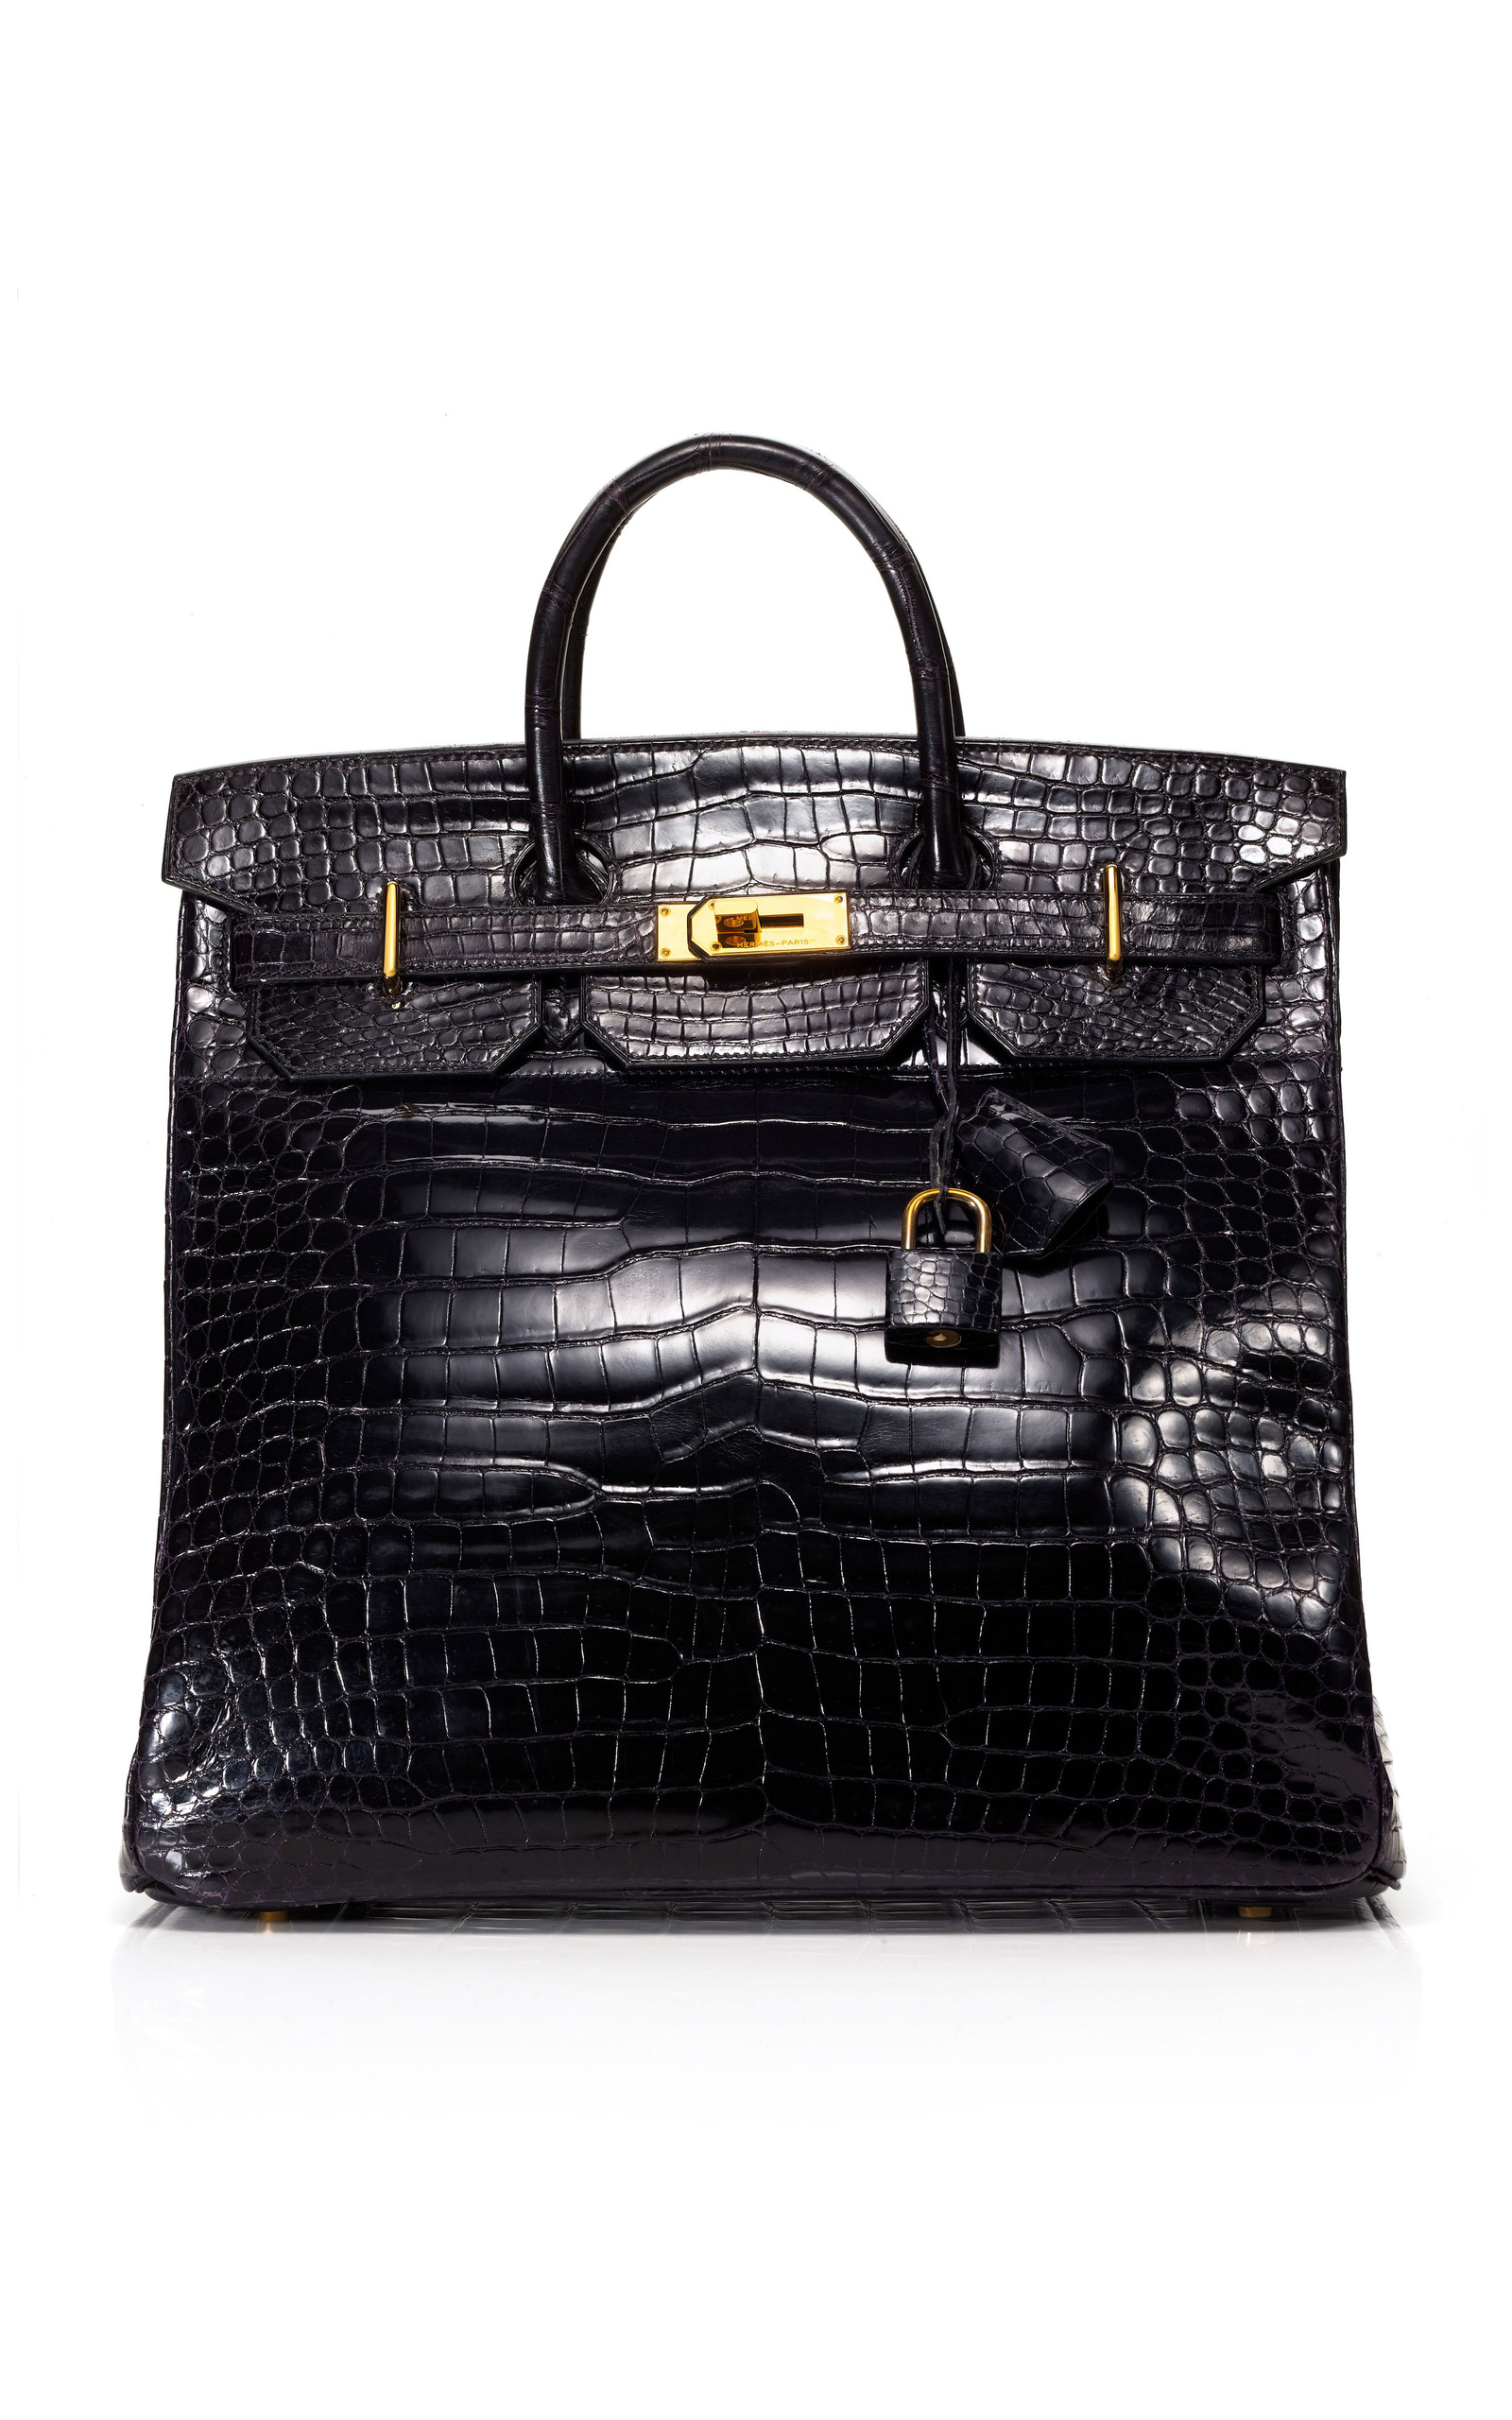 5164750eca Hermes Vintage40cm Black Shiny Porosus Crocodile HAC Birkin. CLOSE. Loading